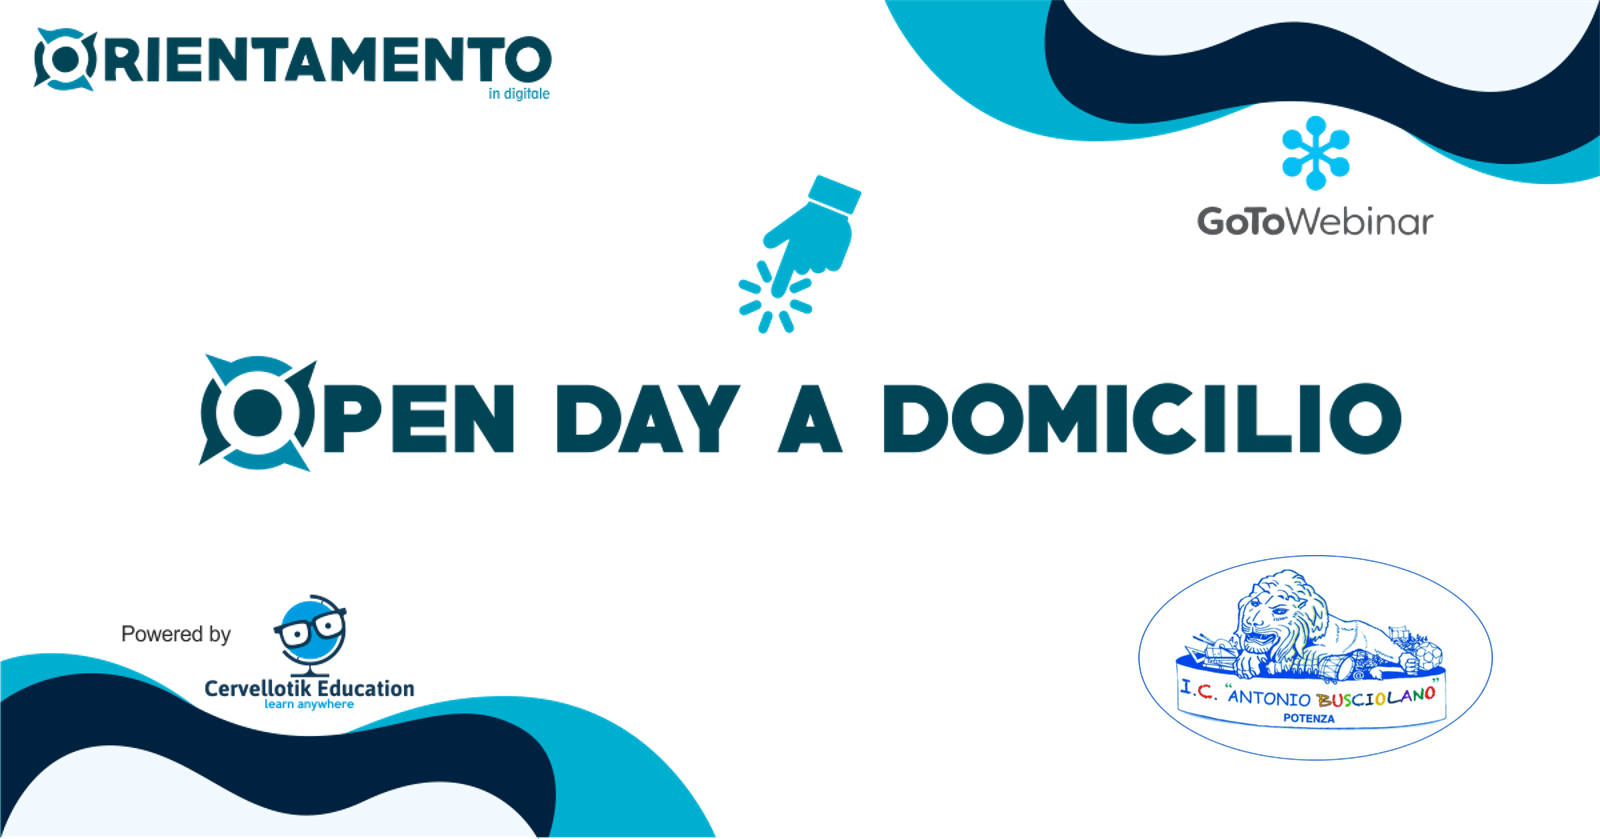 Open day a domicilio